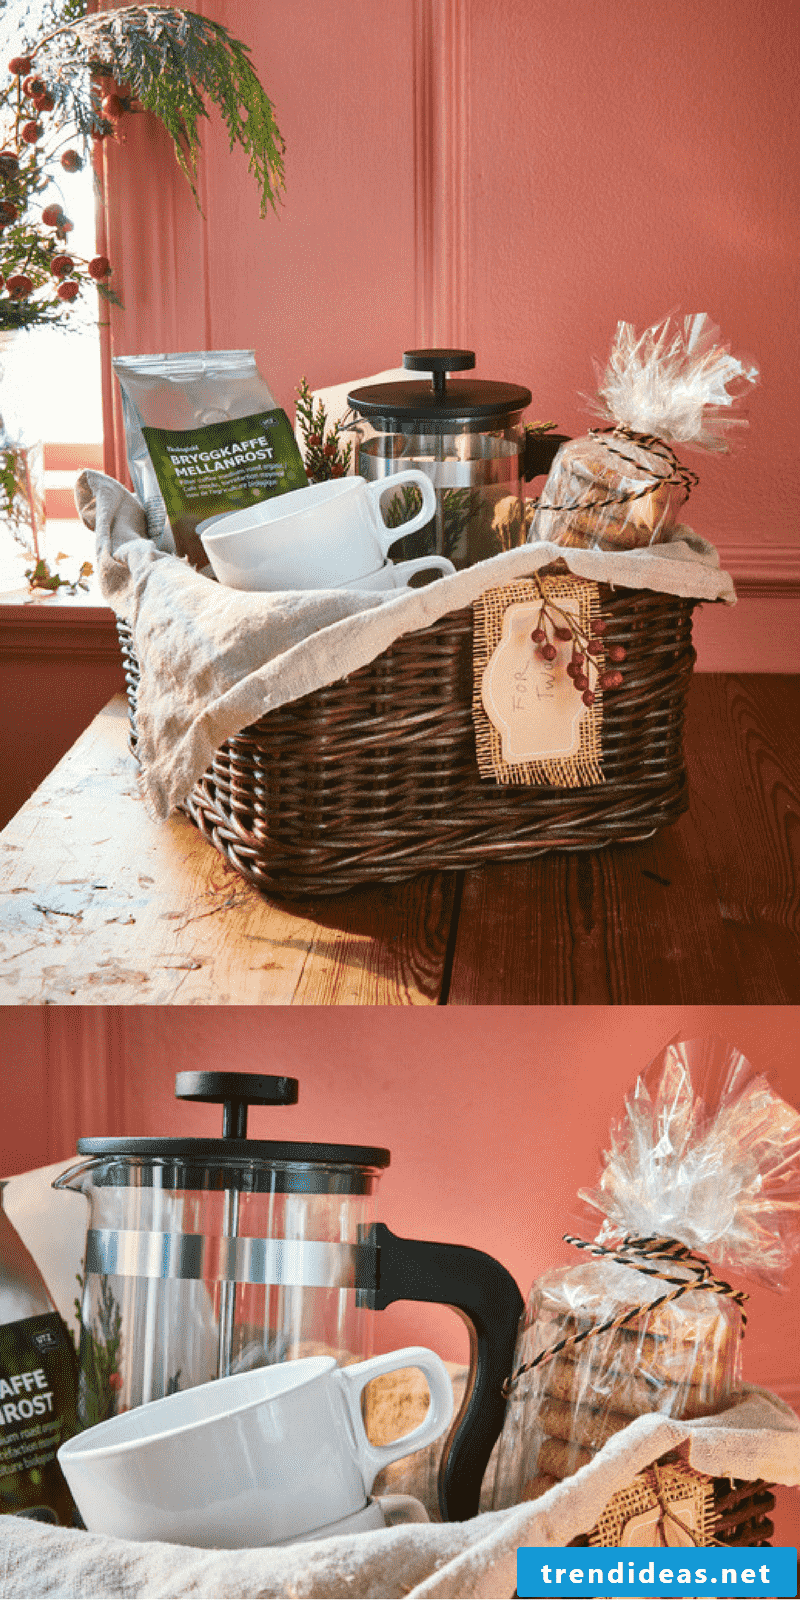 For the best coffee enjoyment to give your parents, you will find gift ideas for Christmas